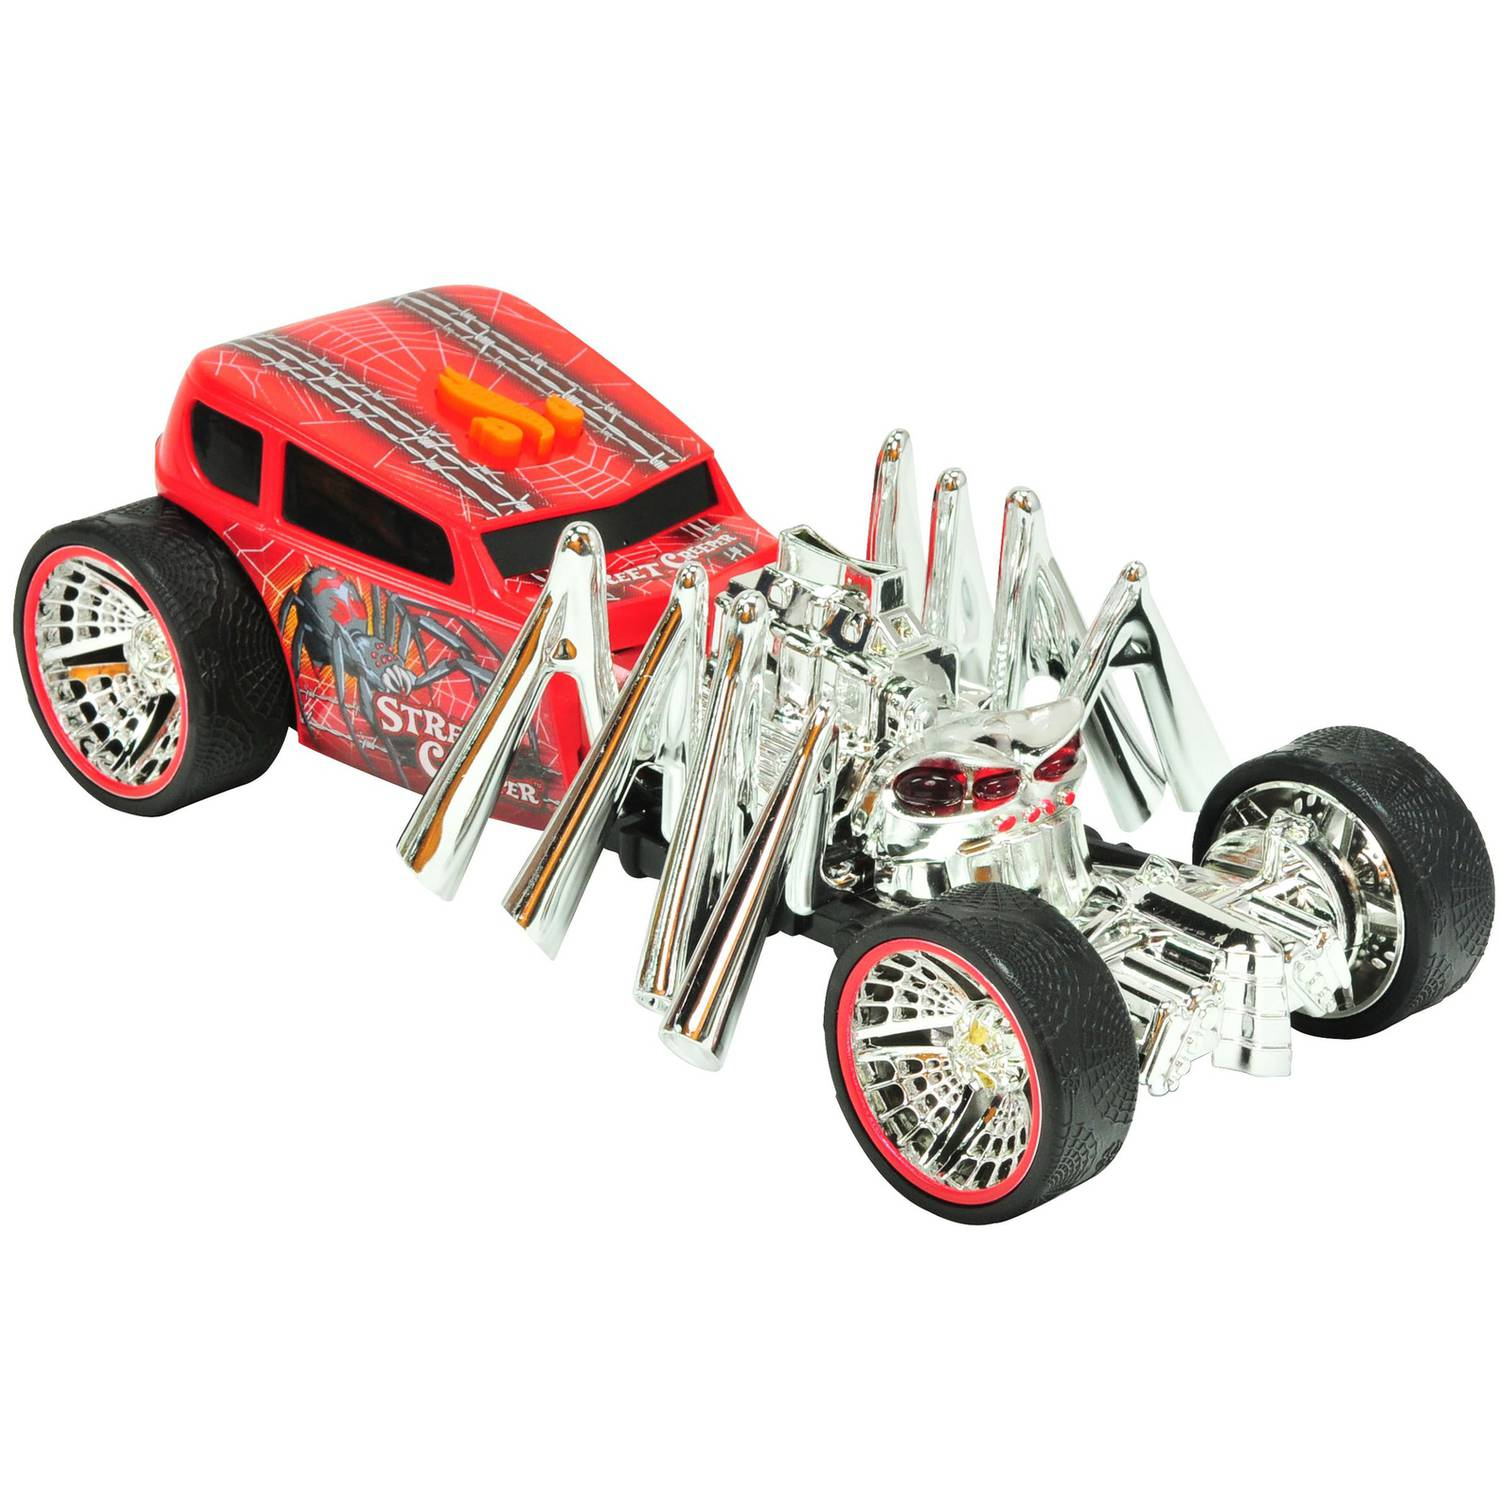 Hot Wheels Extreme Action Lights and Sounds Street Creeper